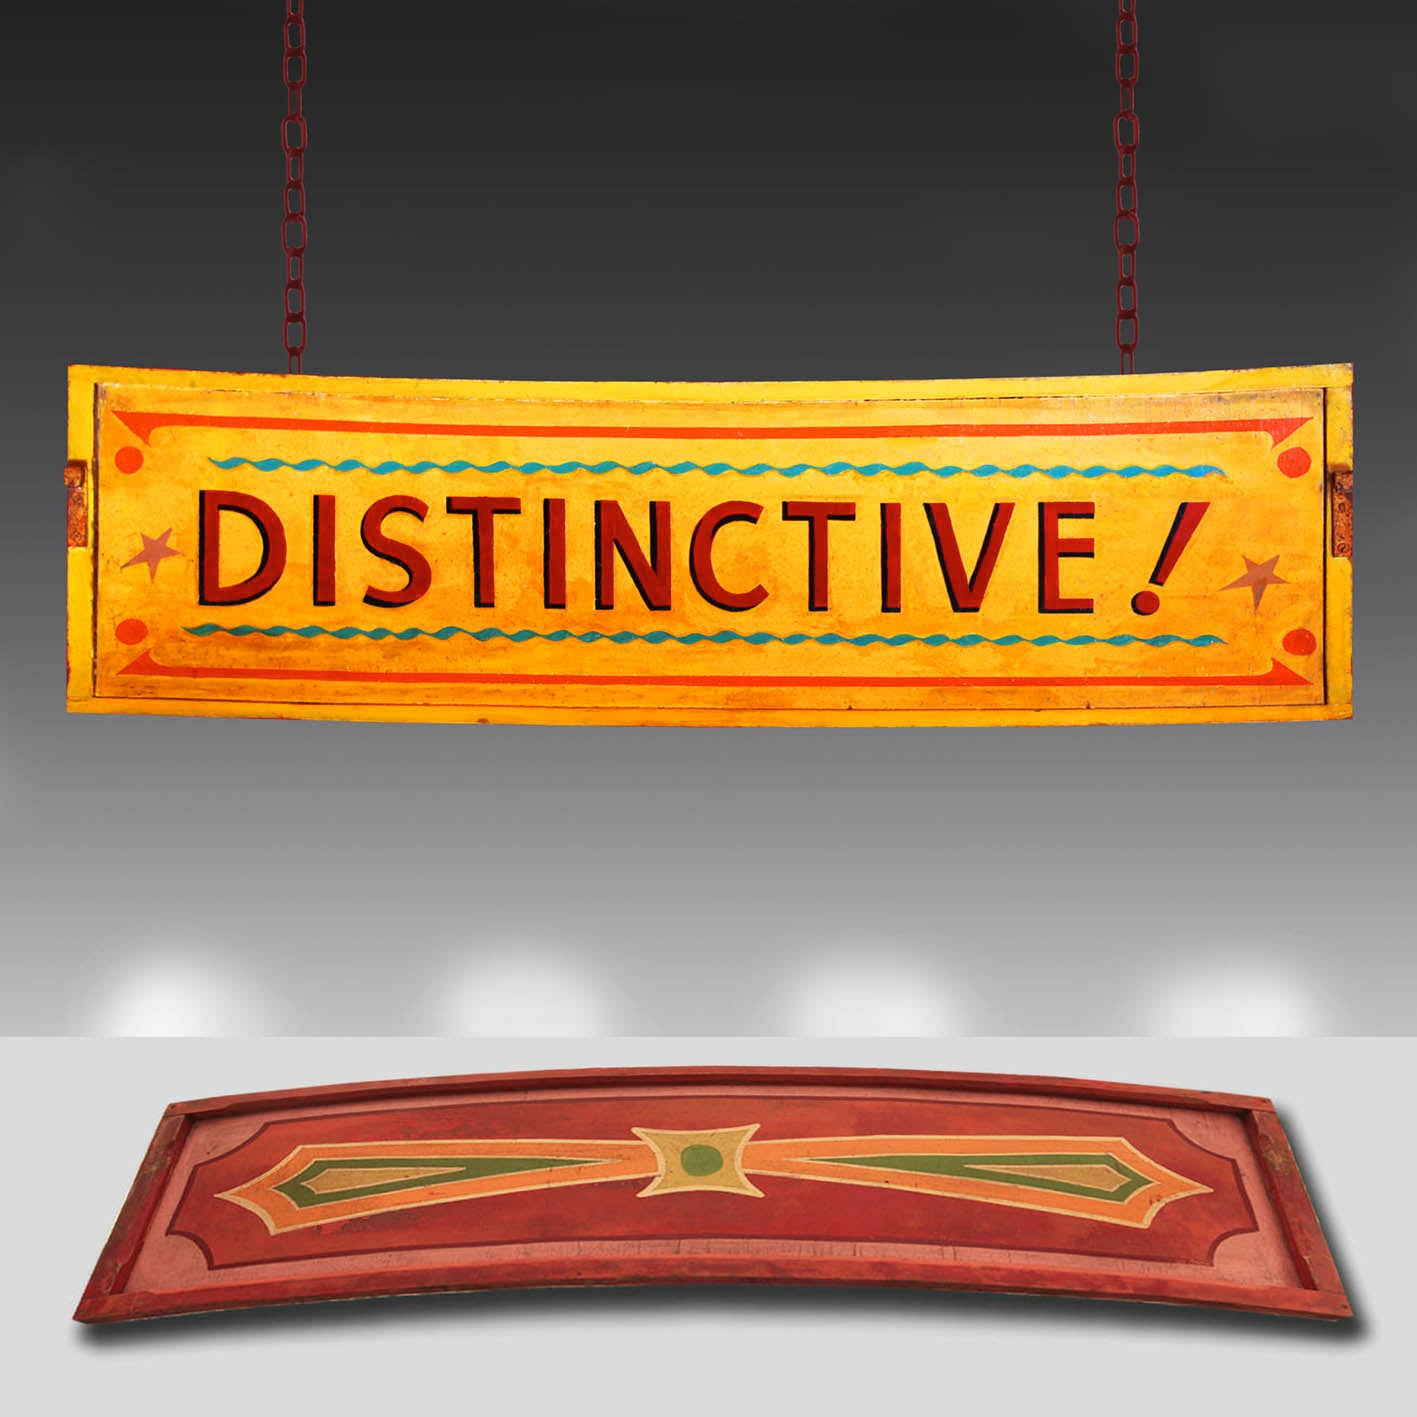 'Distinctive!' 1930's Vintage fairground sign